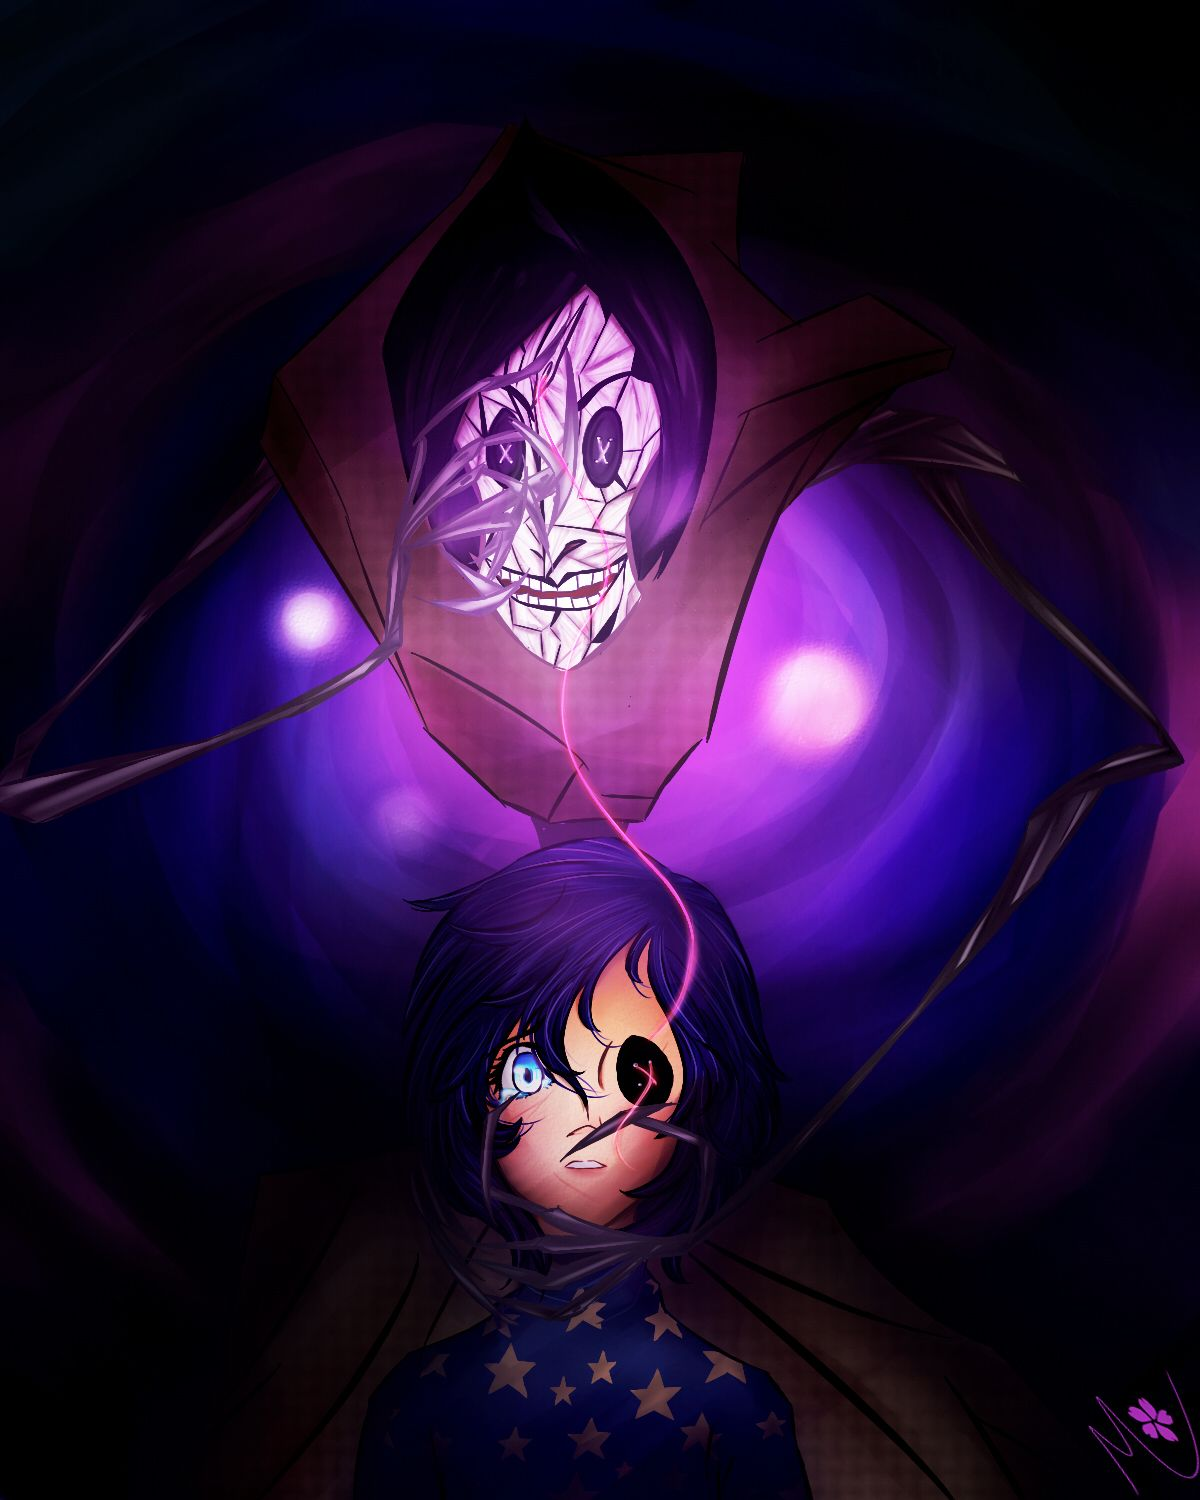 Mommy Loves You Coraline Other Mother Beldam Coraline Fanart Digital Art Other Mother Beldam Drawing Mommy Loves You Other Mother Coraline Coraline